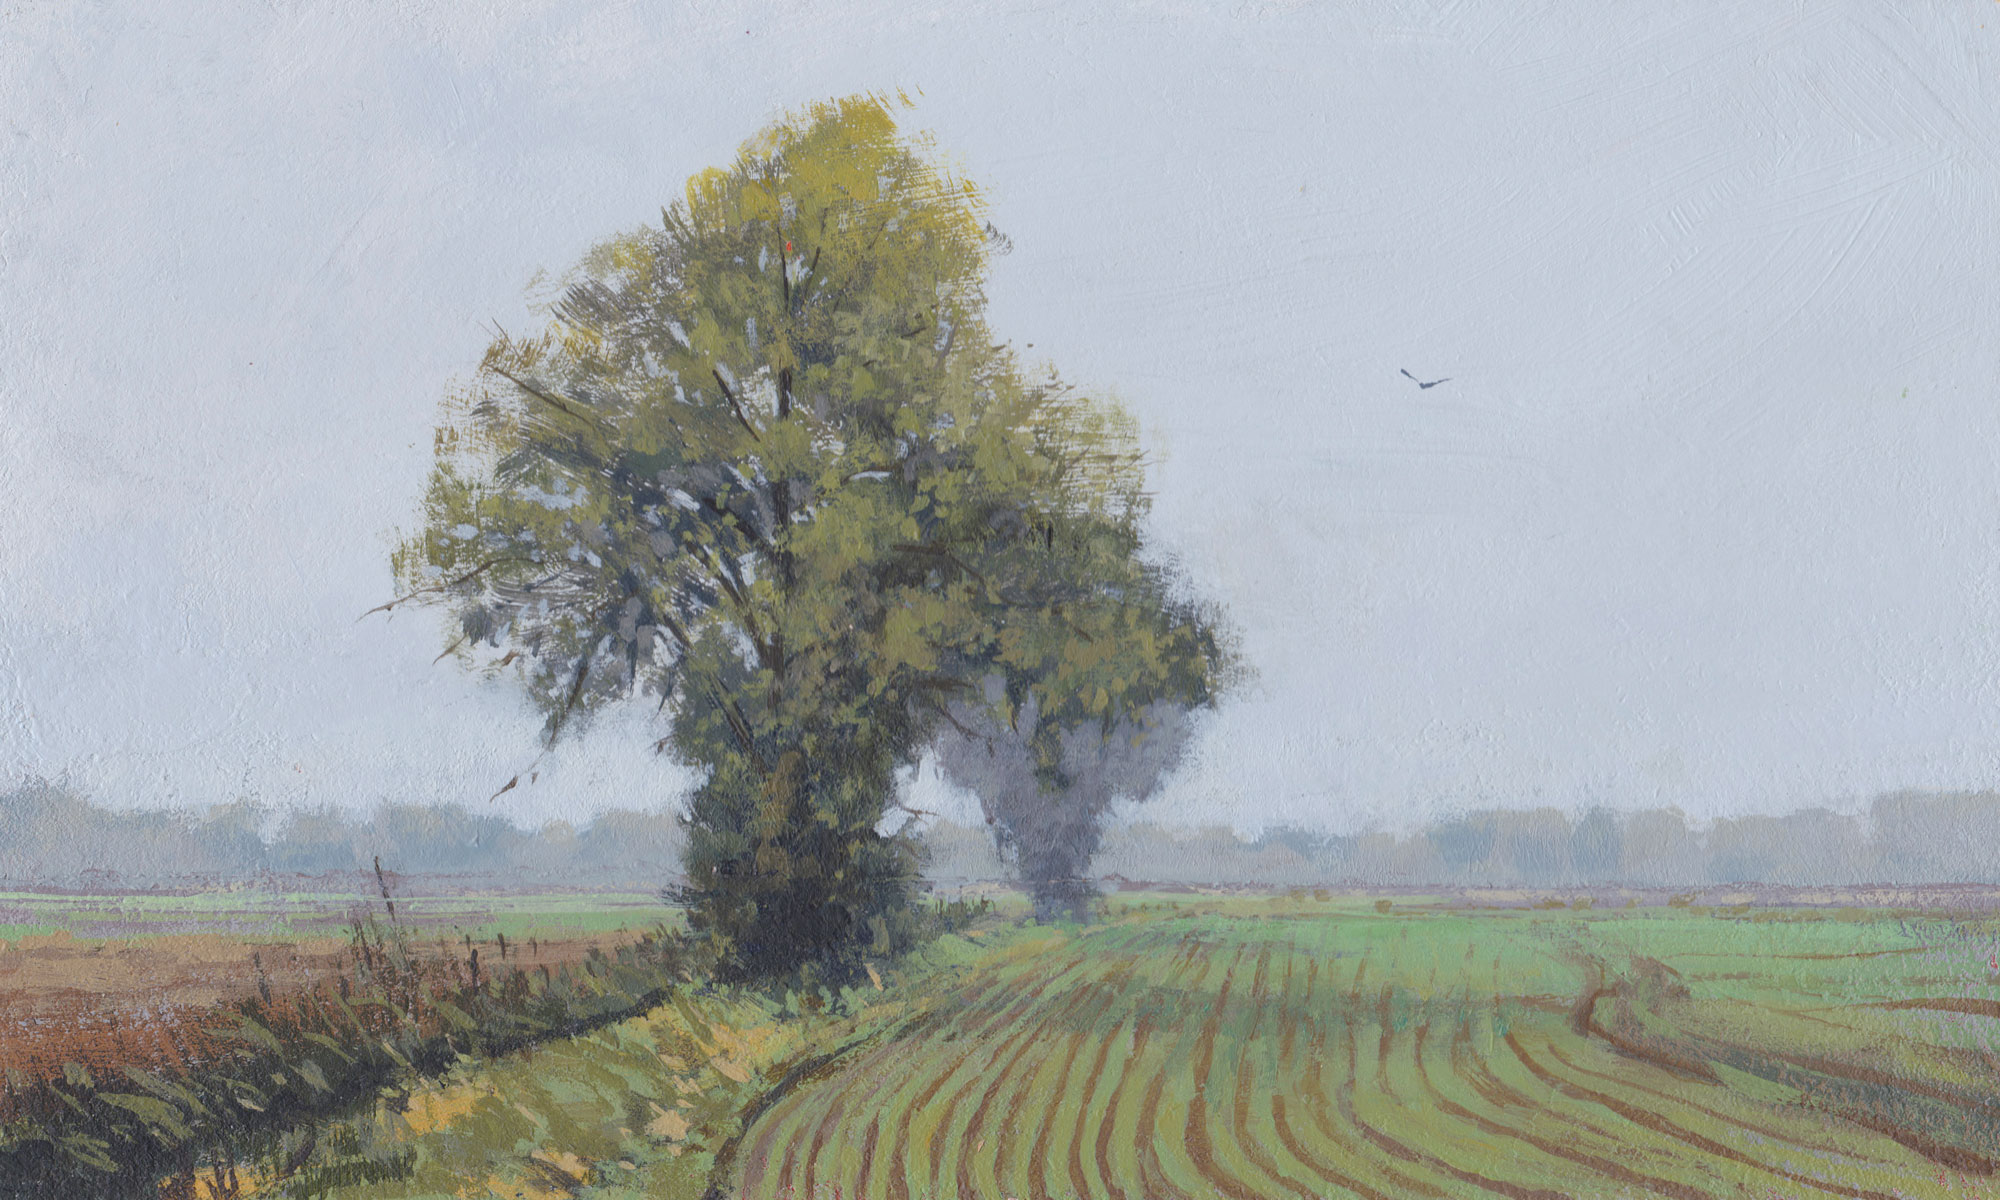 Acrylic painting titled 'Fenland Field' by Nick Tearle Fenland Artist